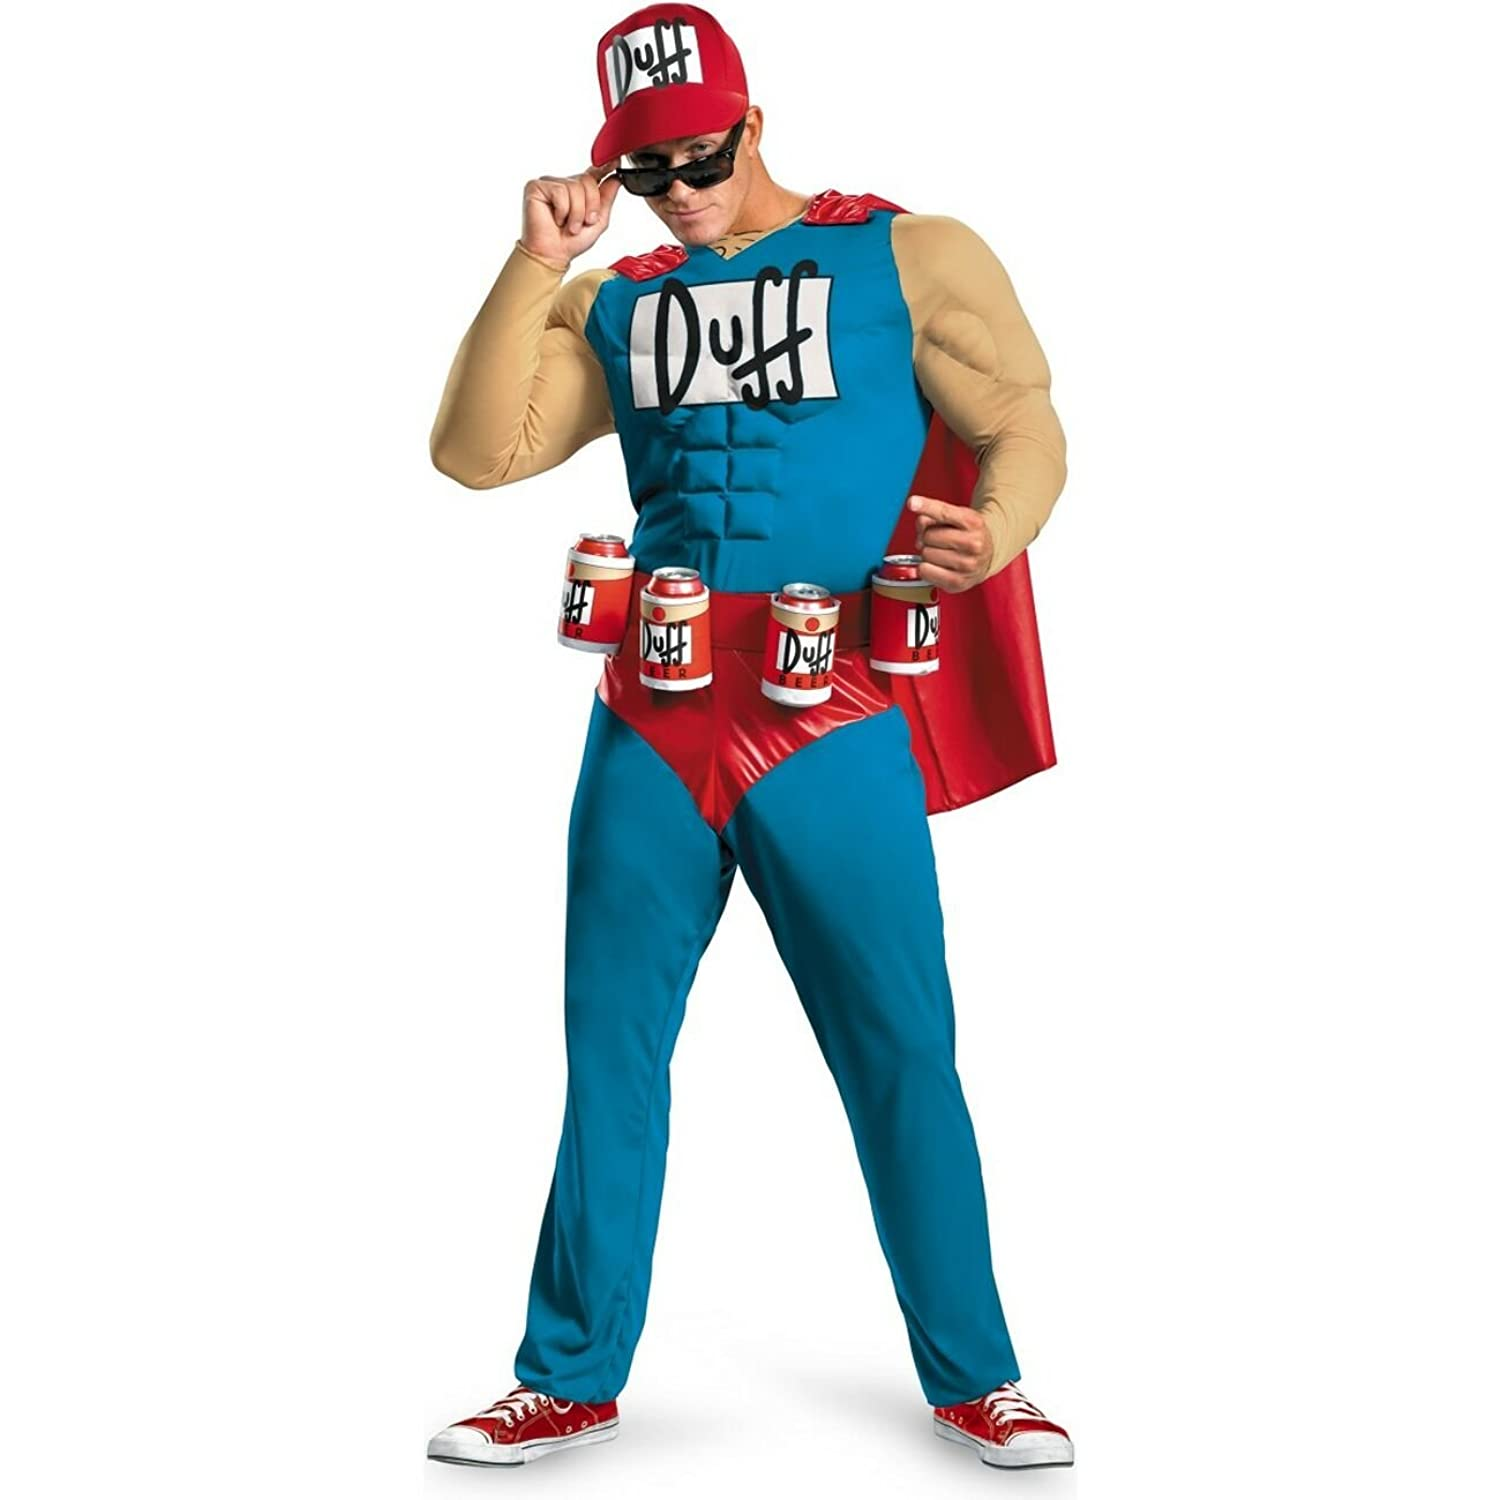 sc 1 st  Amazon.com & Amazon.com: Duffman Costume: Clothing